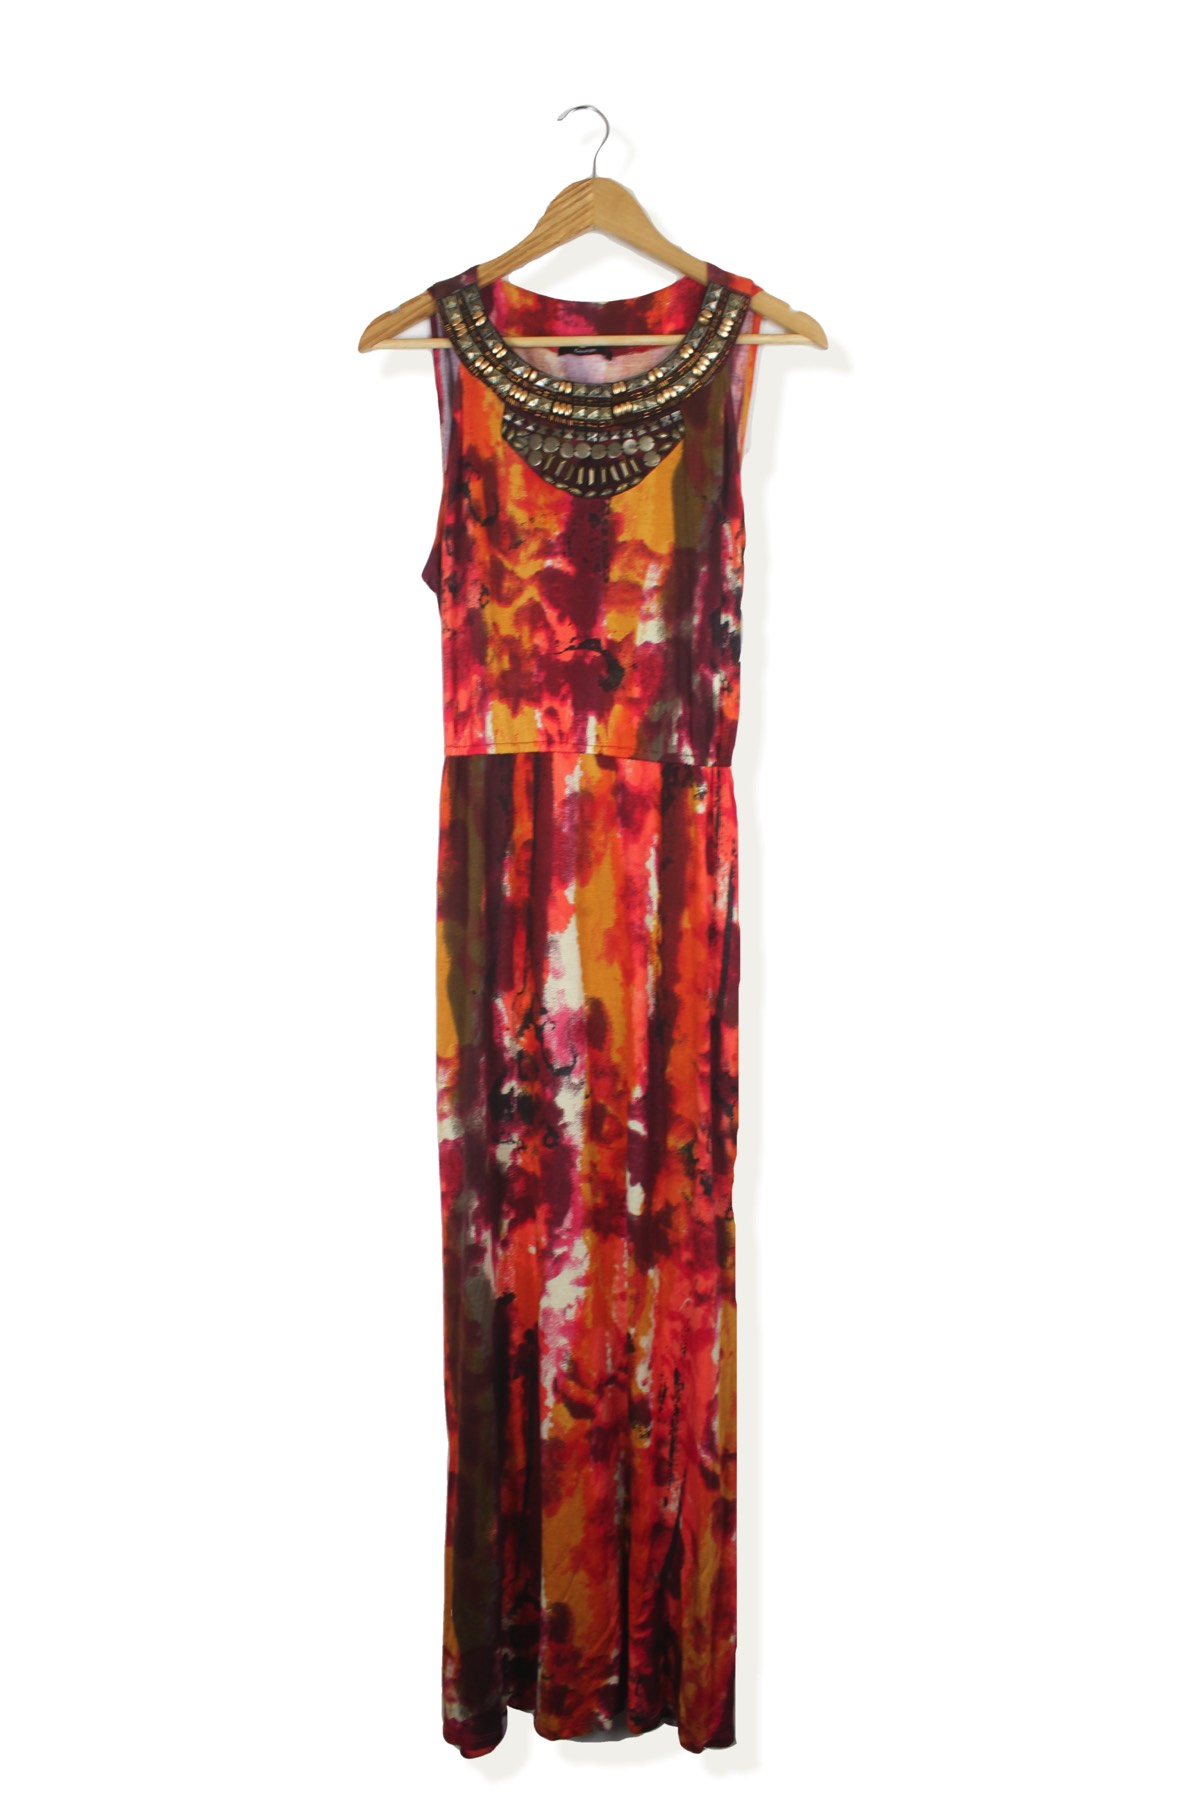 5986dc5121a60 ... maxi dress Size 16. Sold Out. Previous. George Second-Hand Clothing